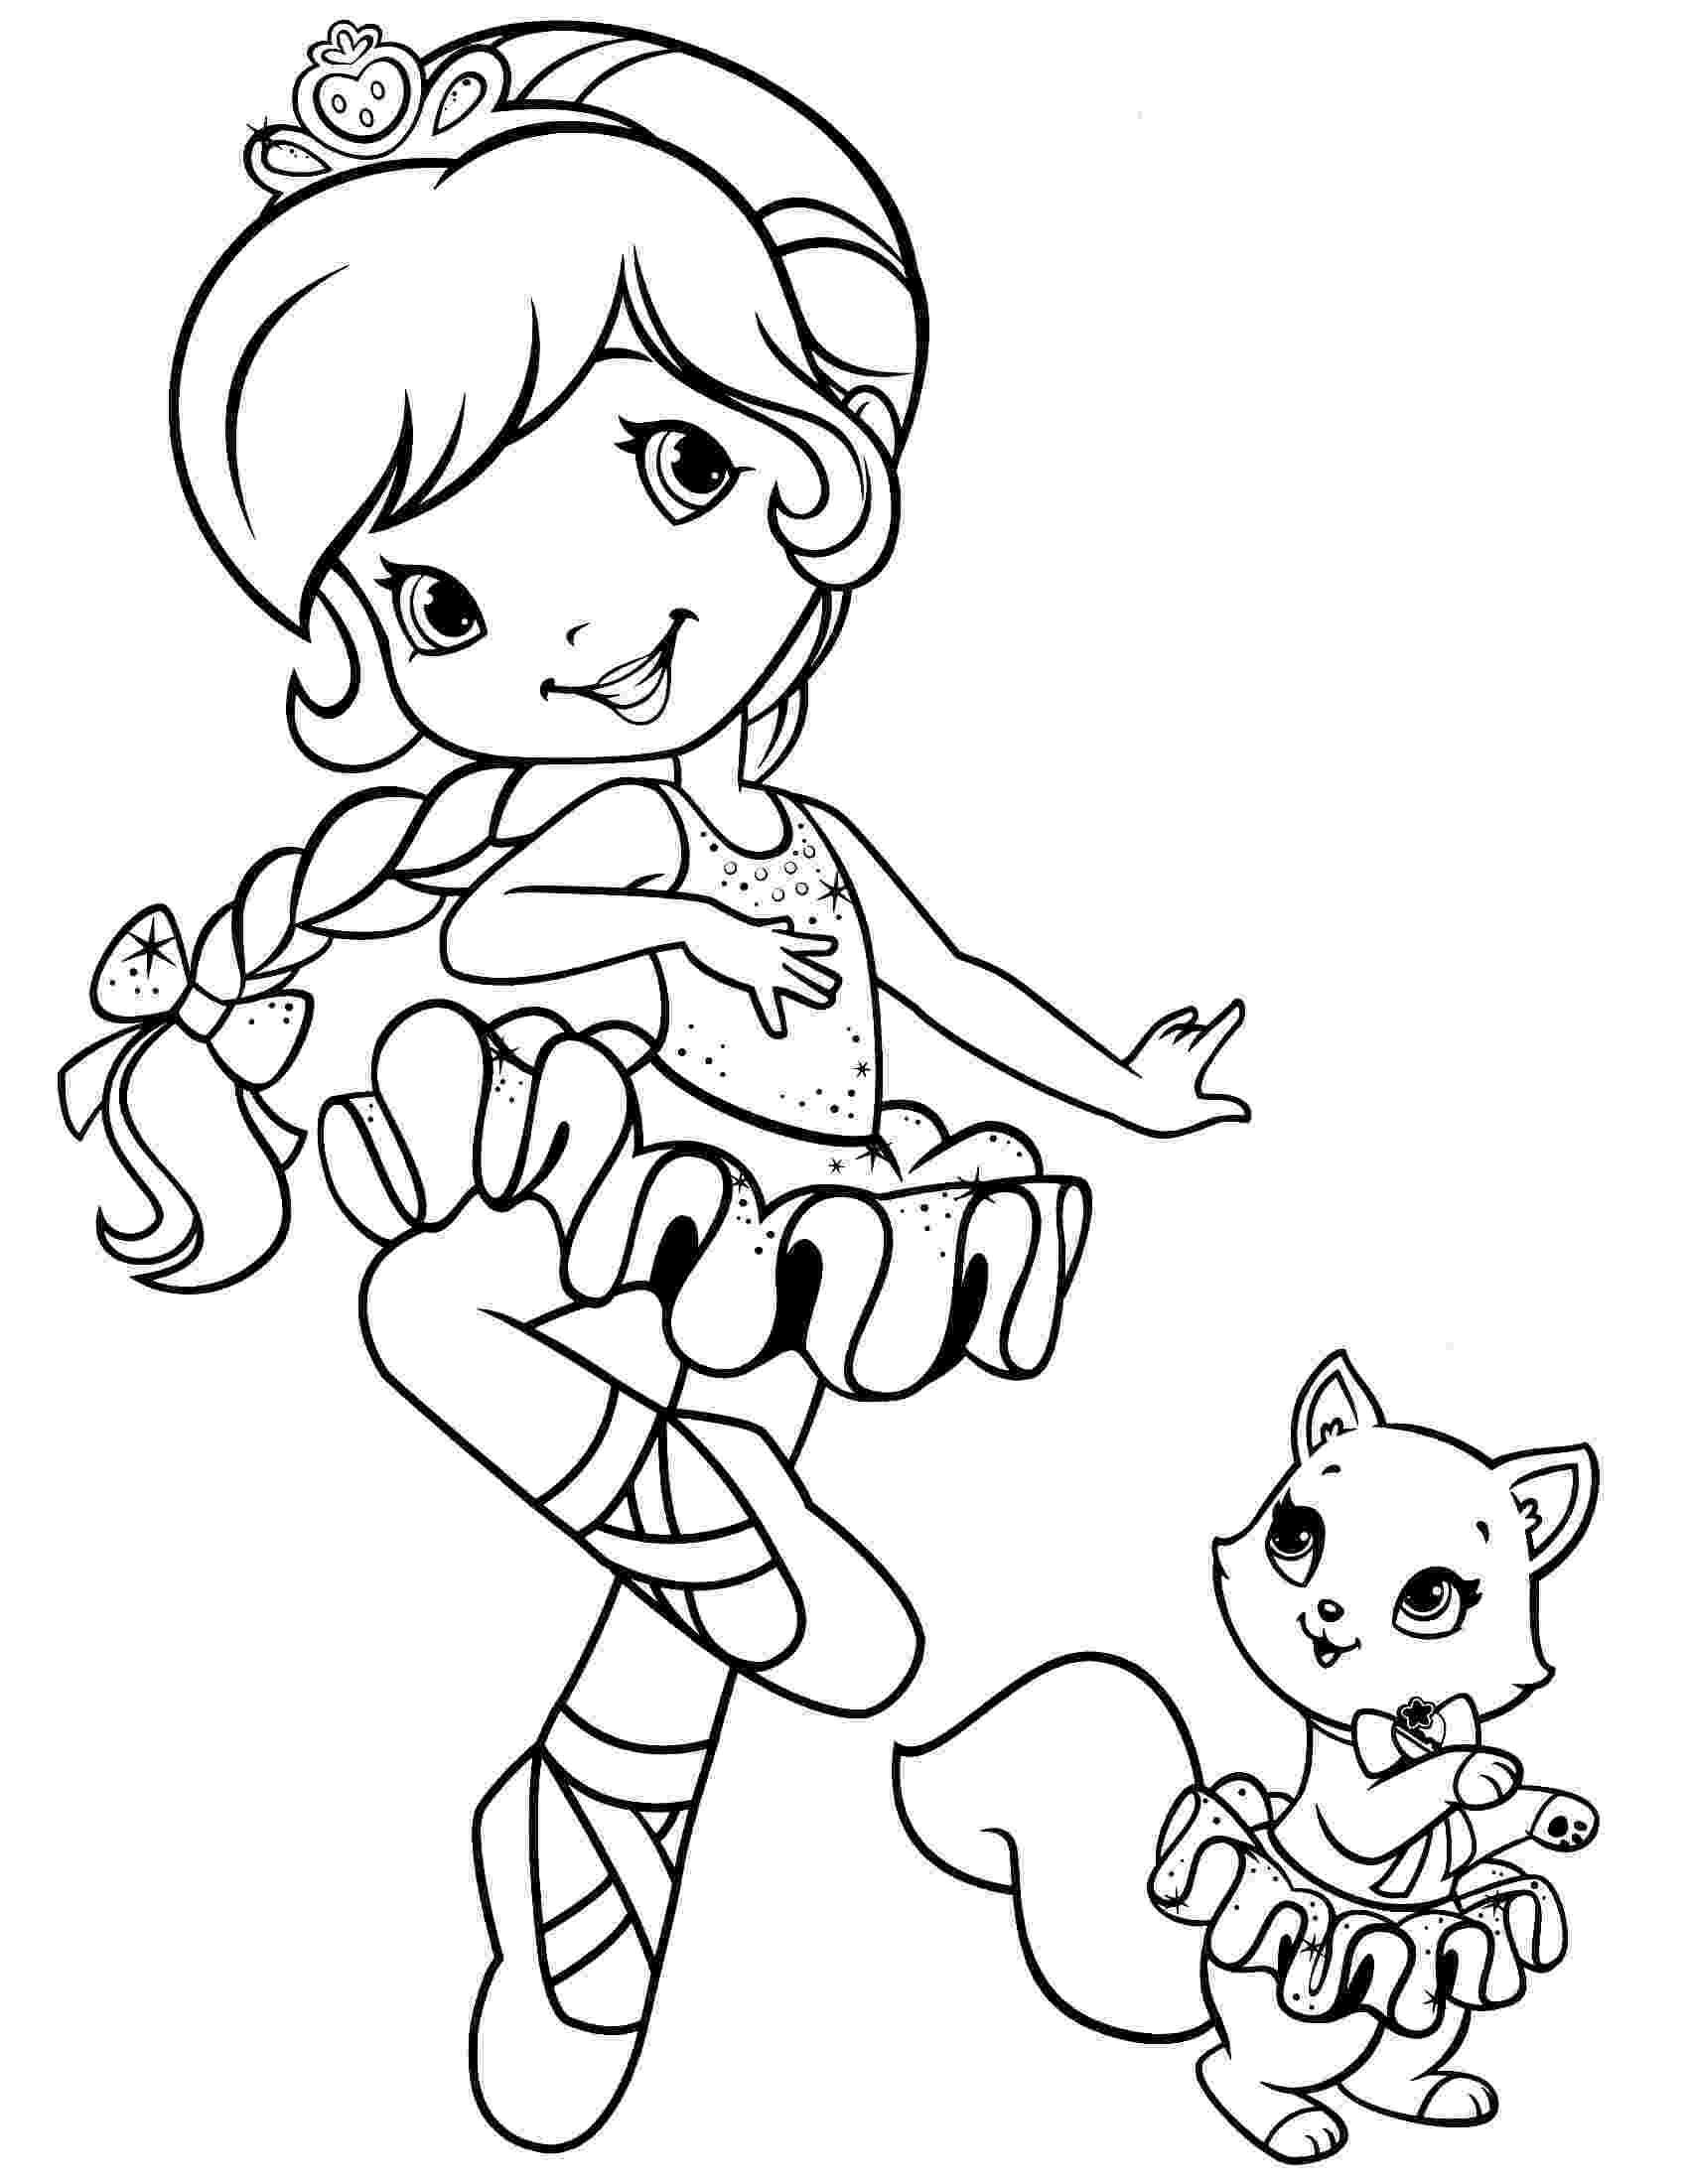 strawberry shortcake coloring page coloring pages for girls strawberry shortcake coloring pages shortcake coloring page strawberry